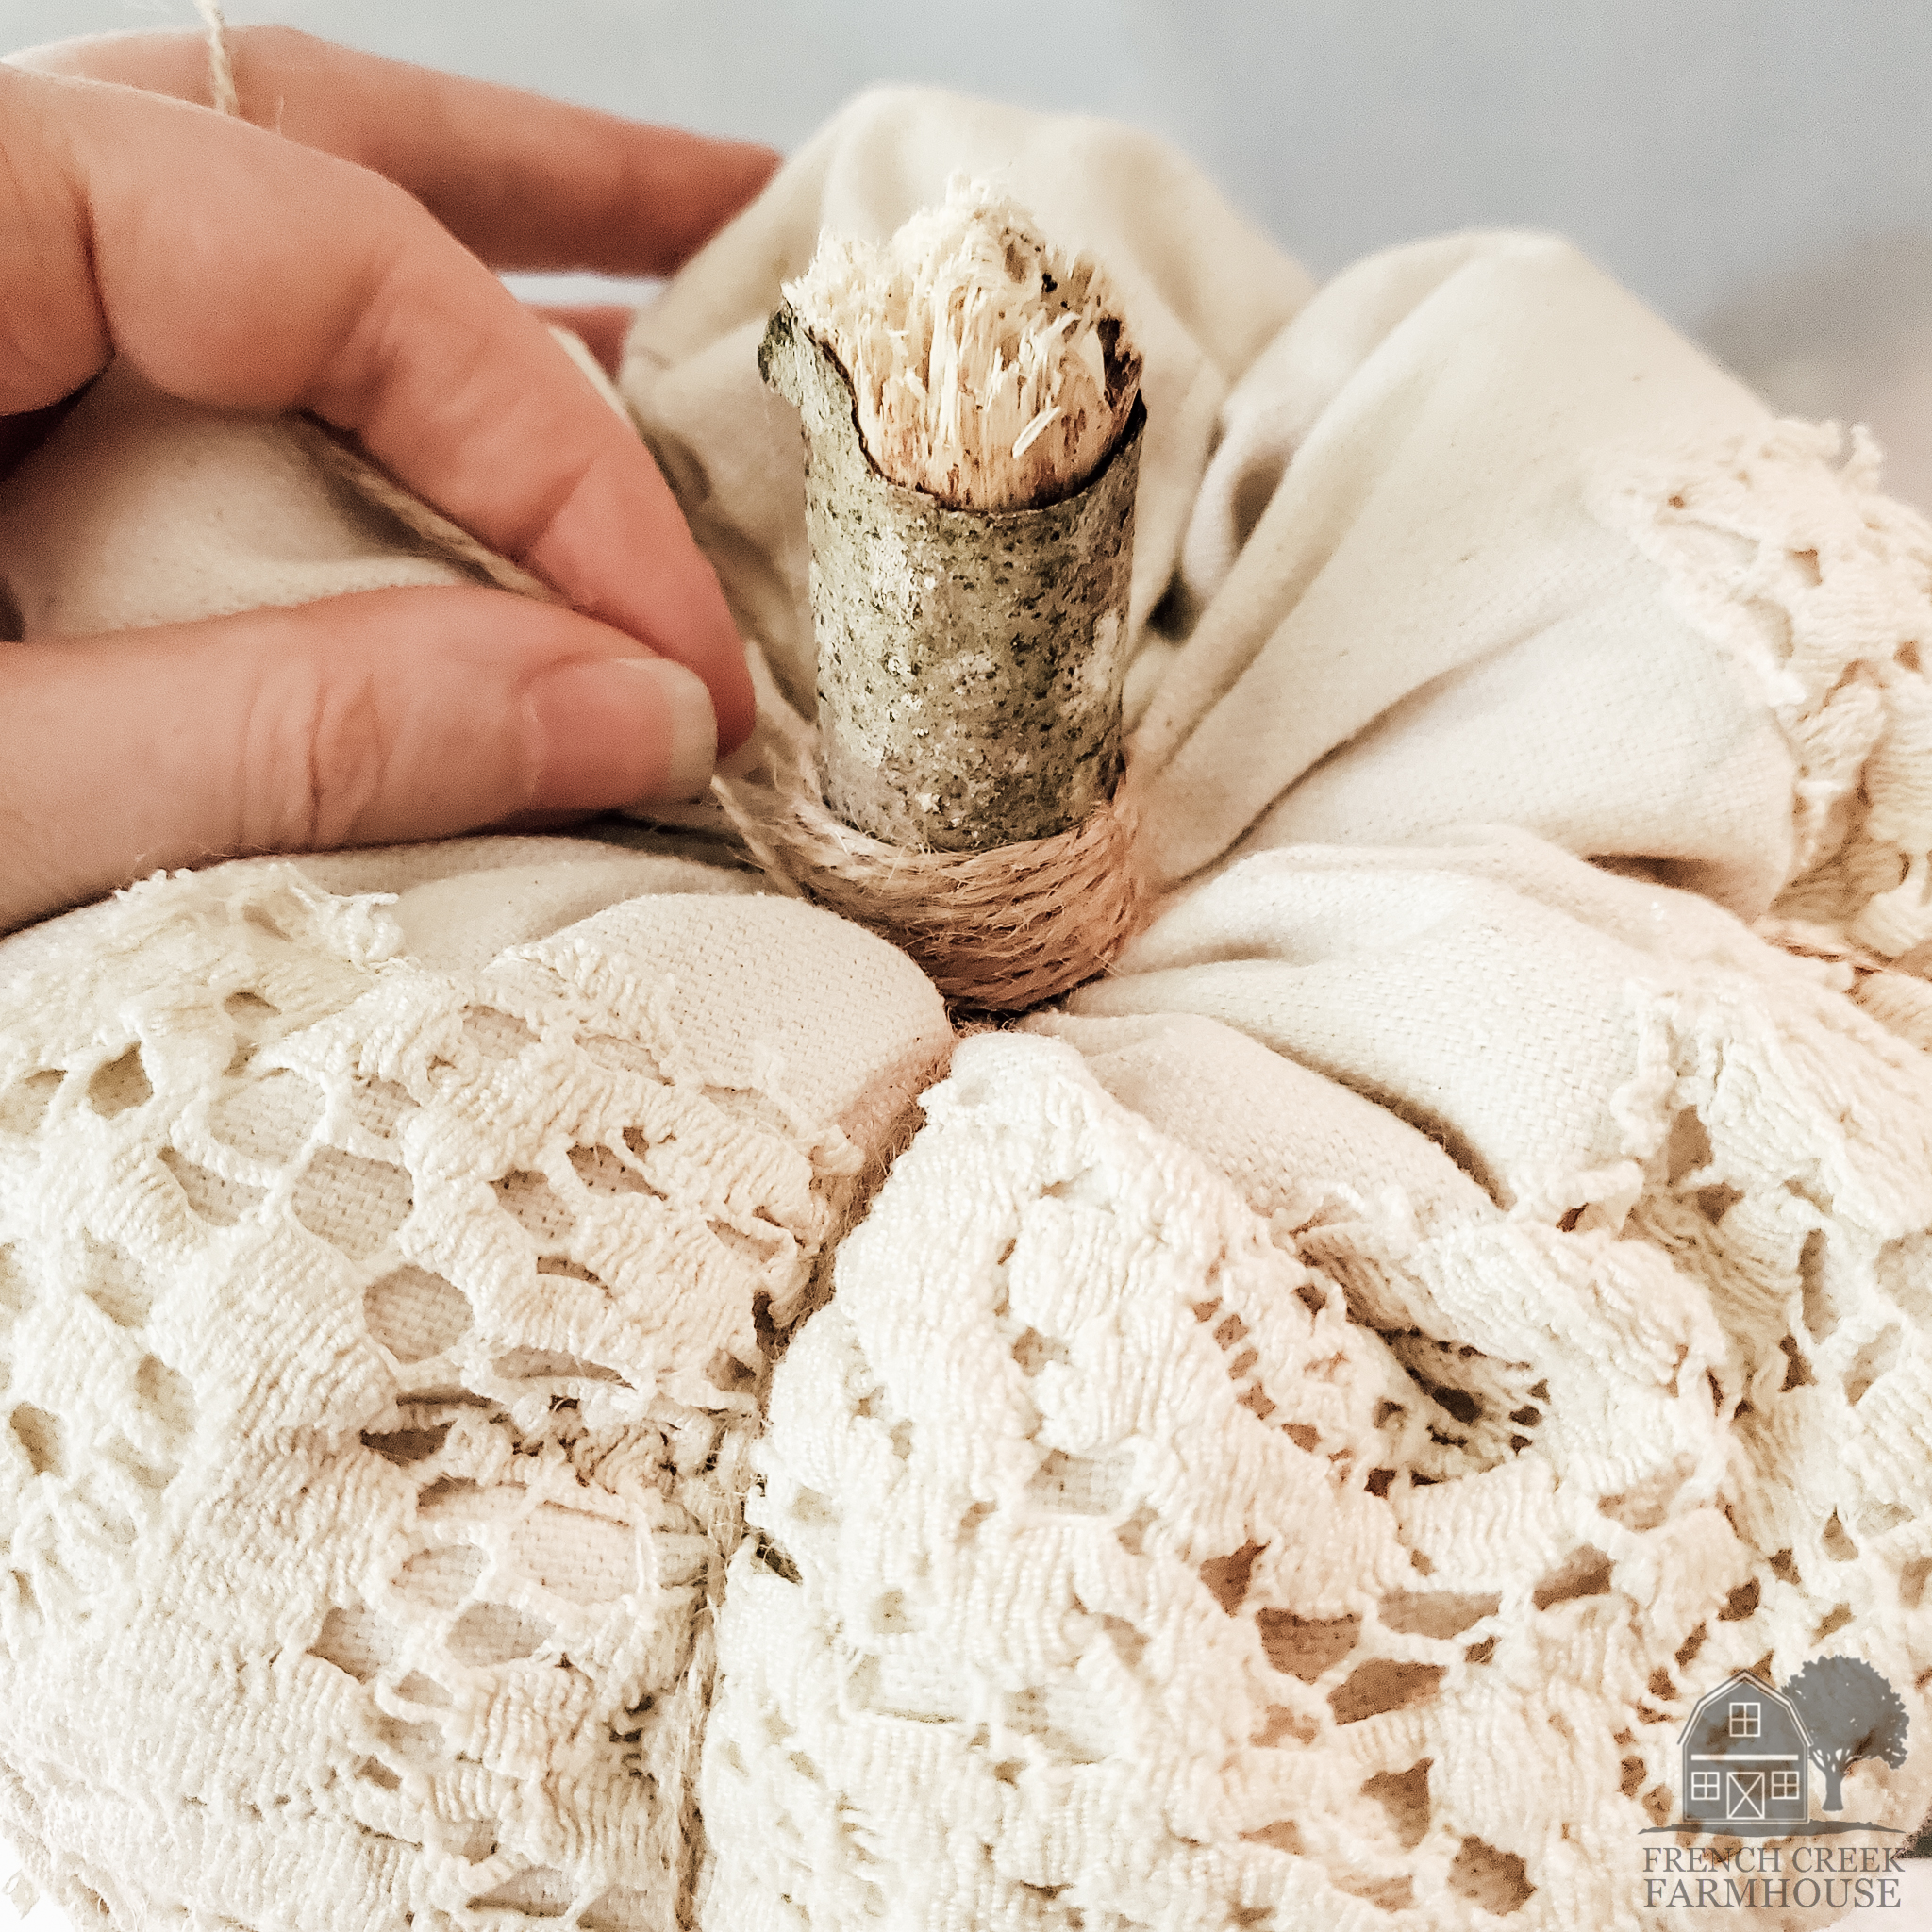 Give the stem a finish look with jute twine